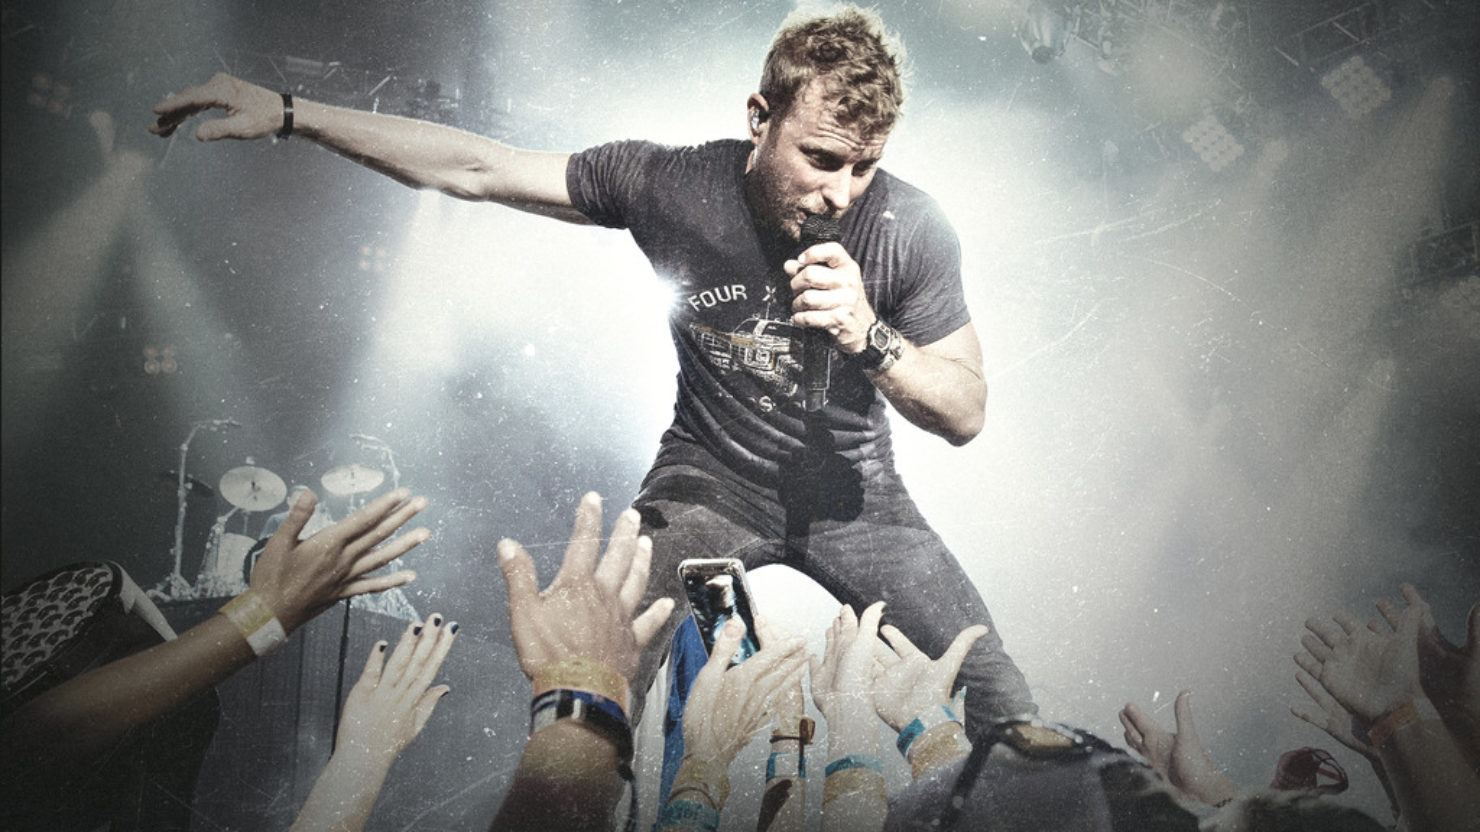 dierks bentley - upcoming shows, tickets, reviews, more